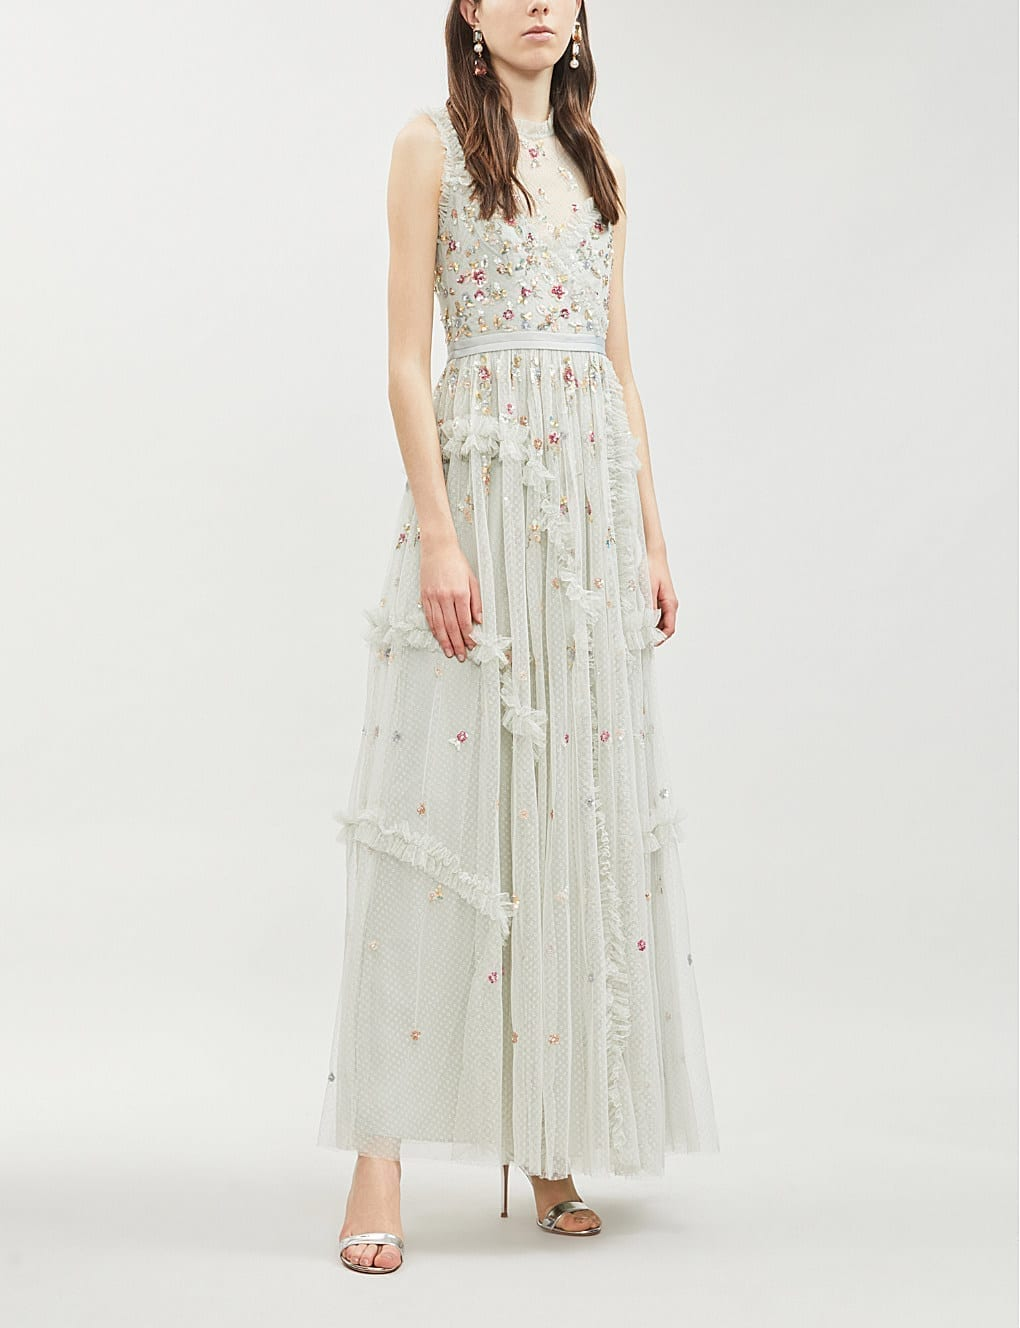 NEEDLE AND THREAD Shimmer Ditsy Embroidered Tulle White Dress